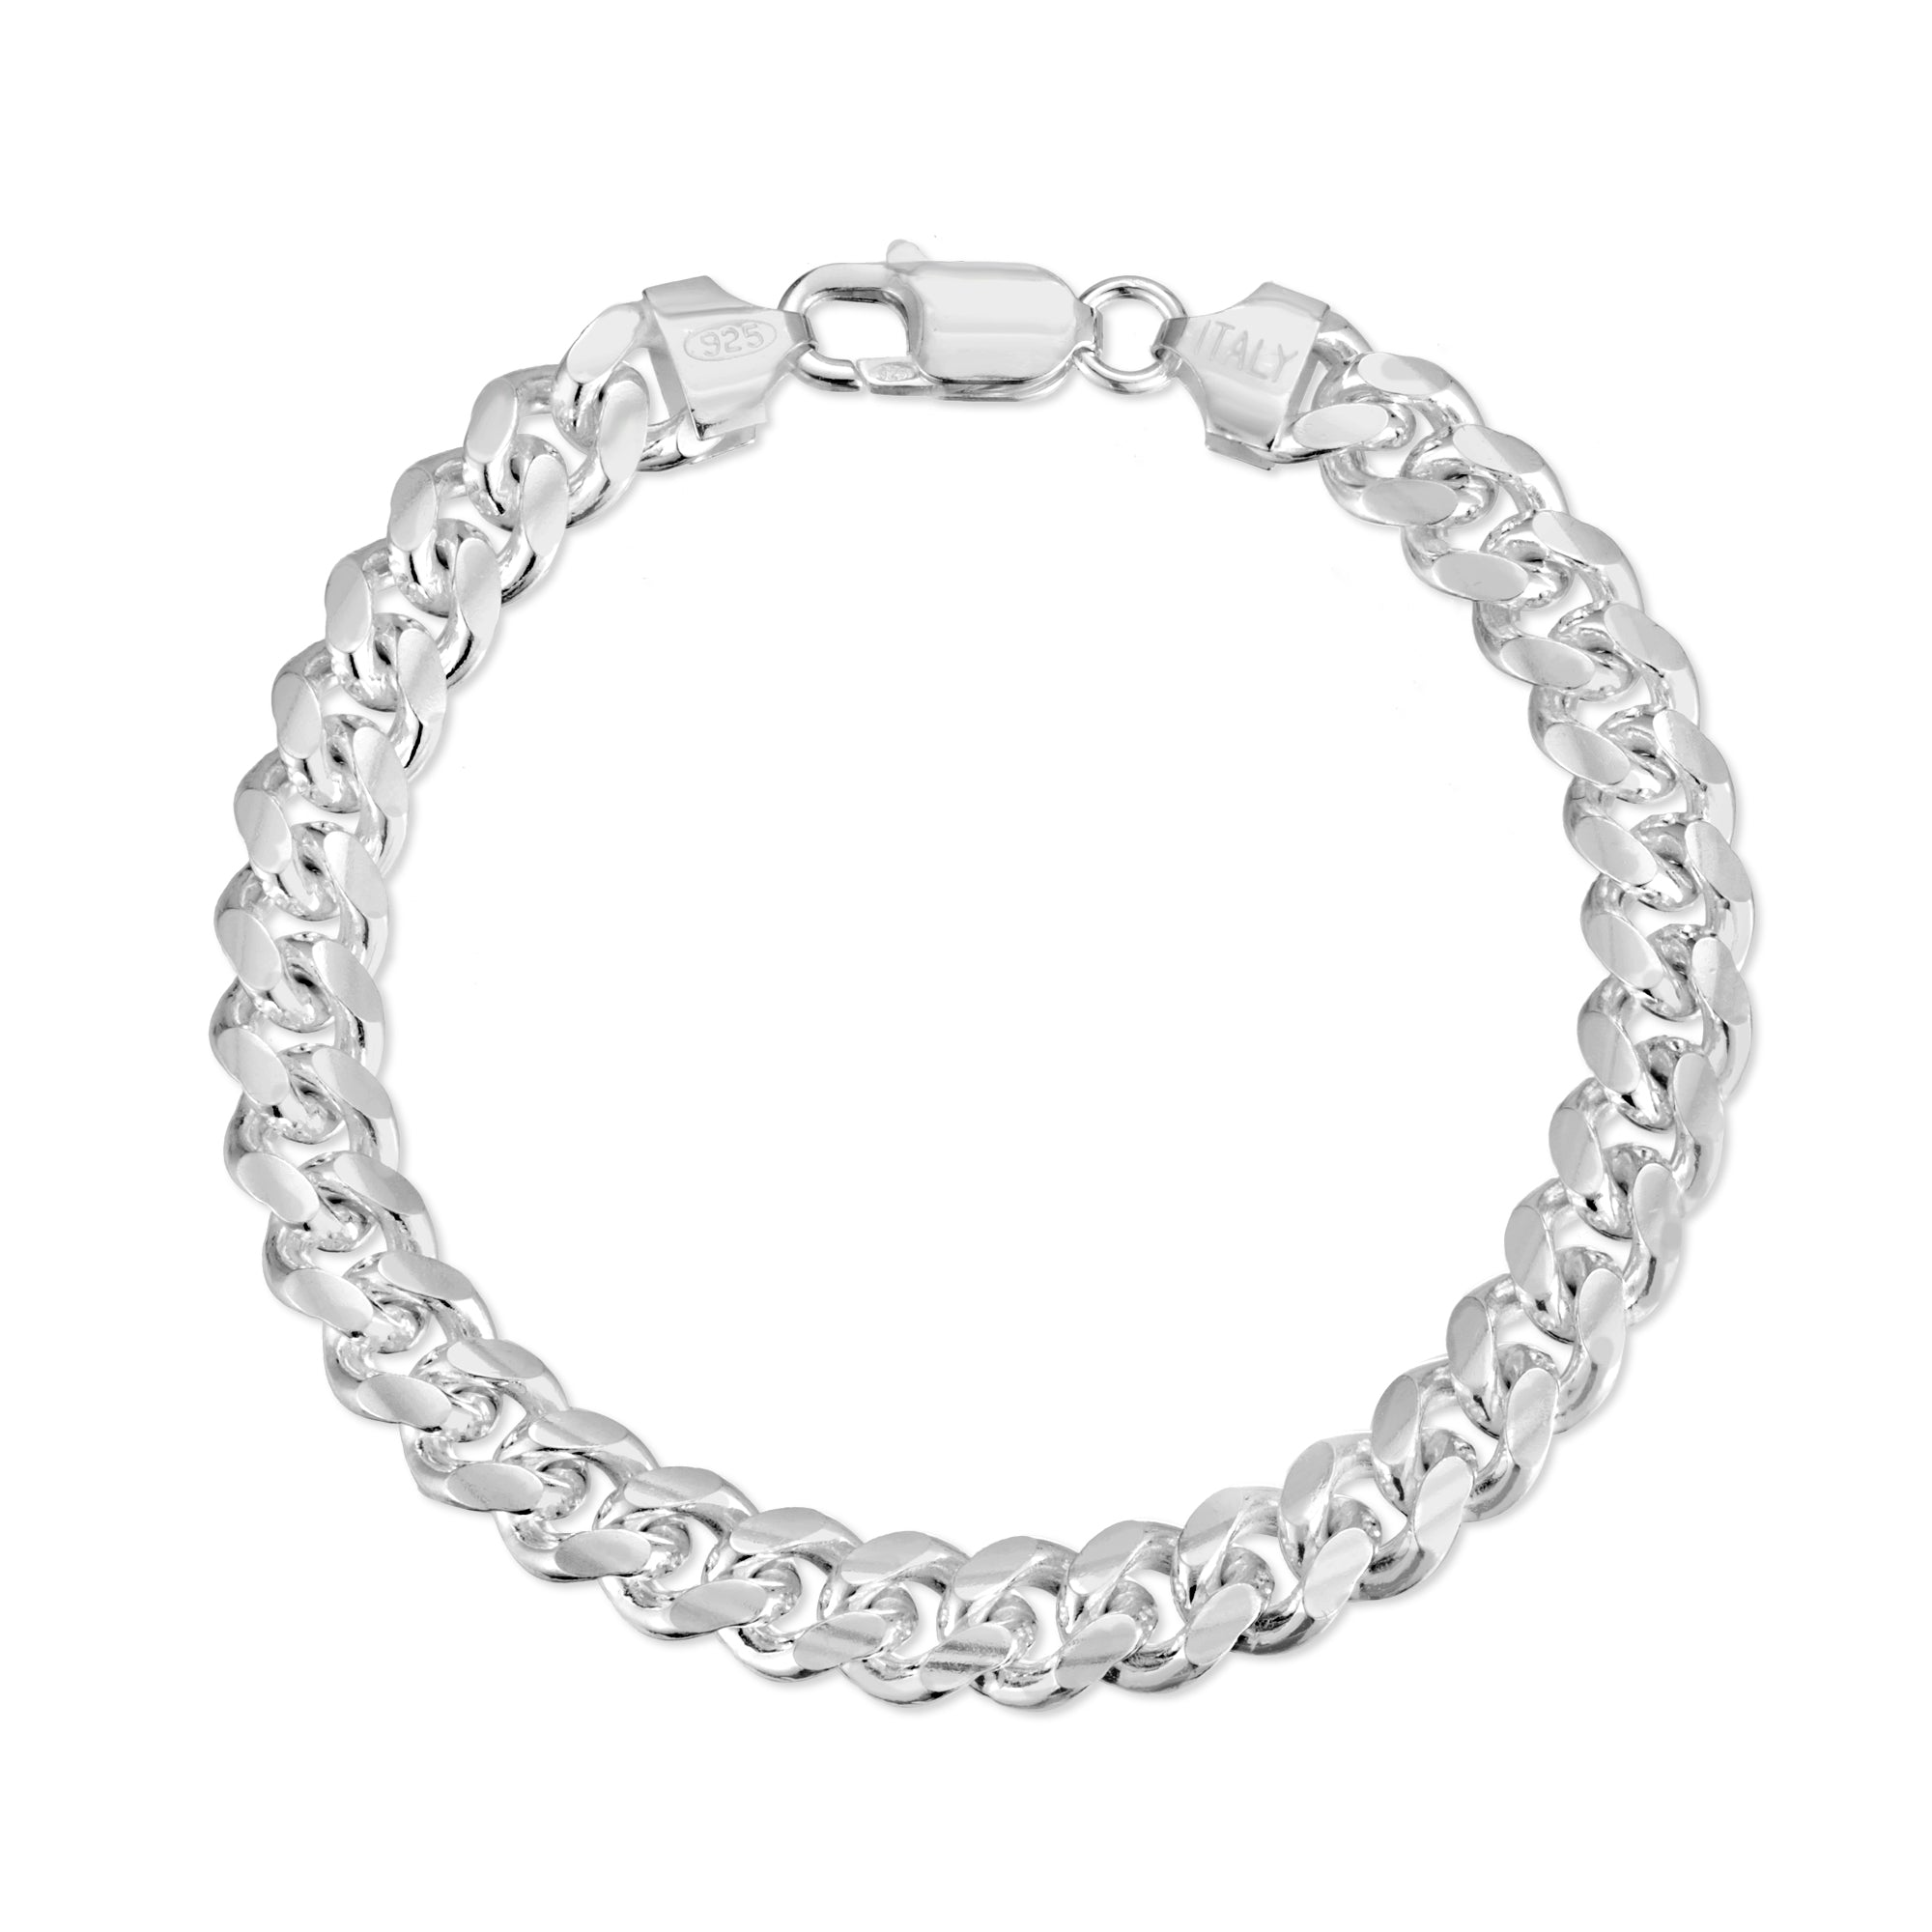 7mm Sterling Silver Miami Cuban Link Bracelet